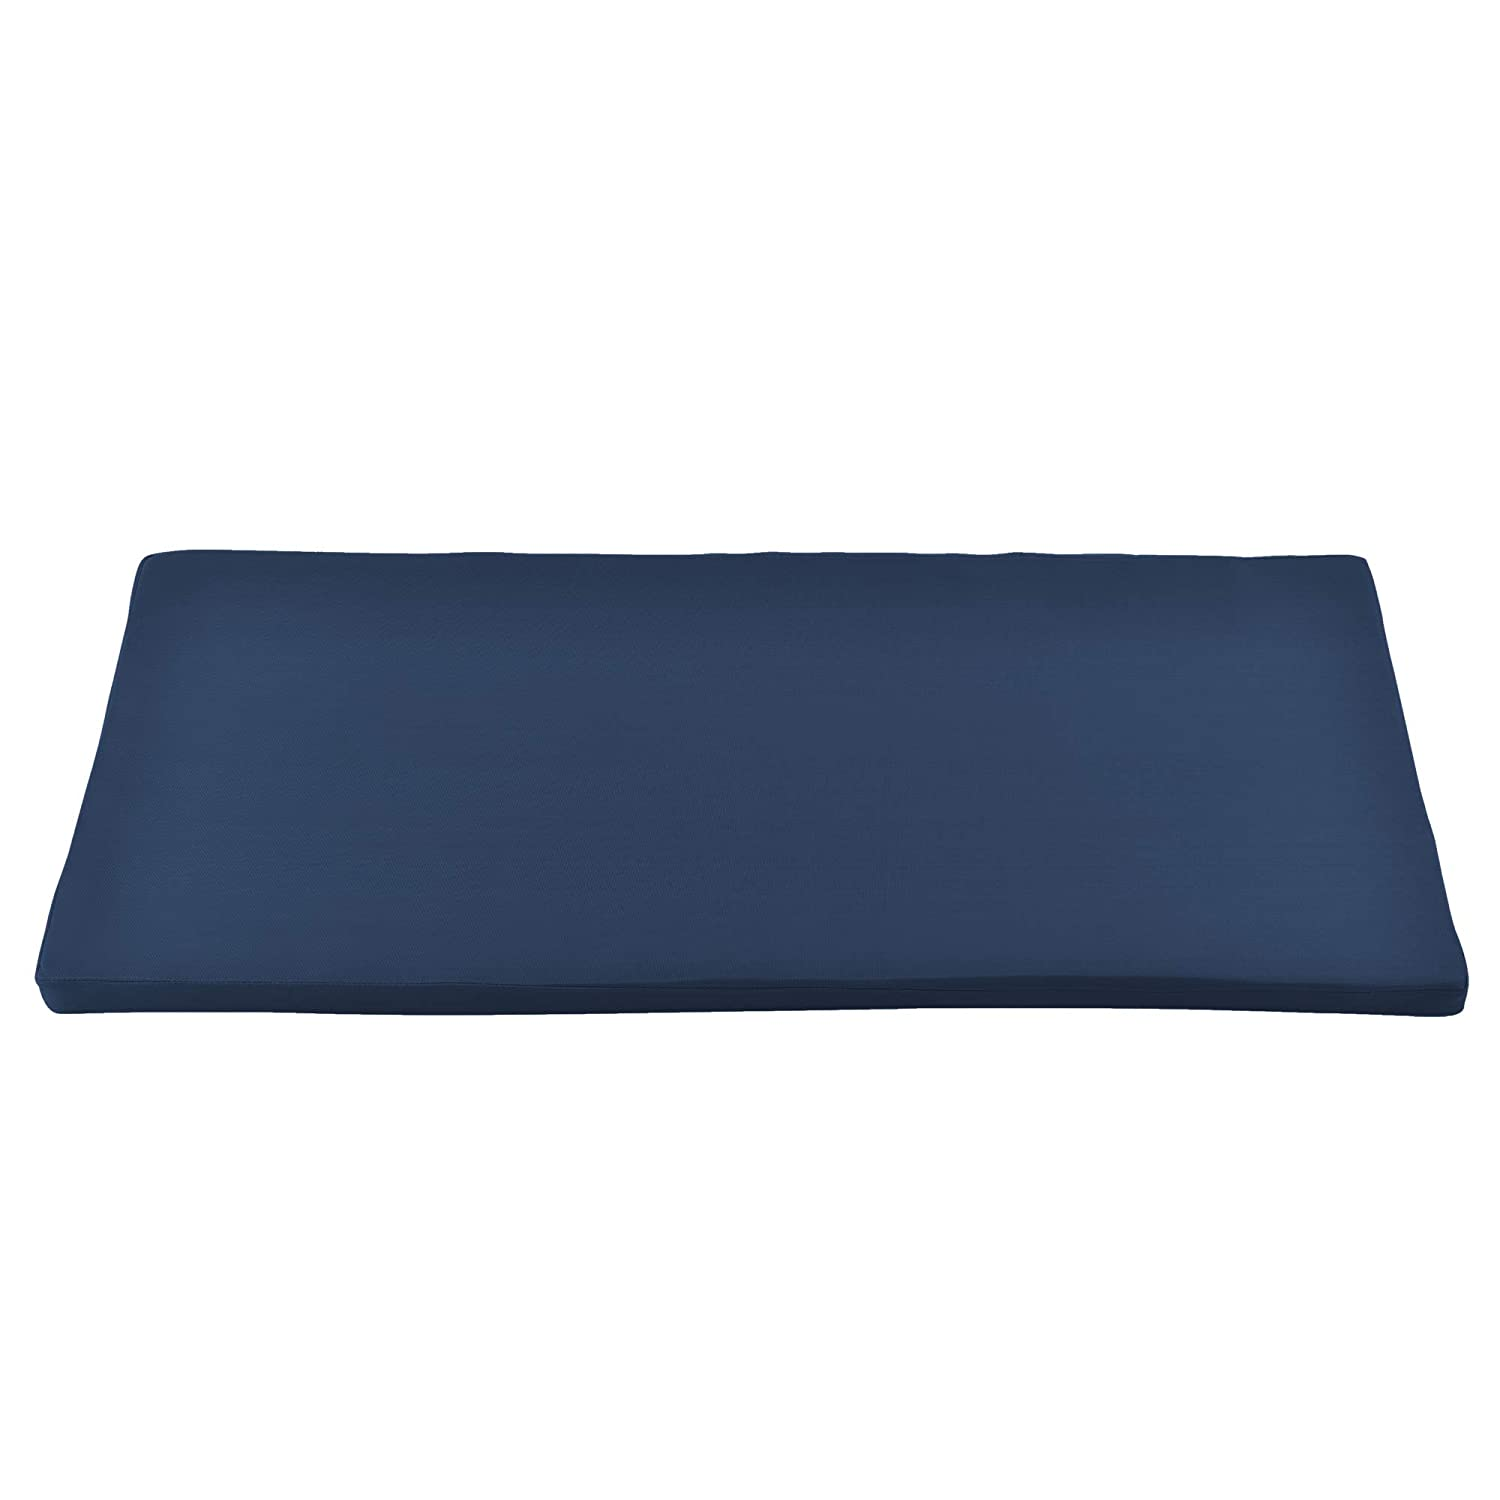 neu.haus Outdoor Bench Cushion Pad with Cover Dark Blue 100x48x4cm